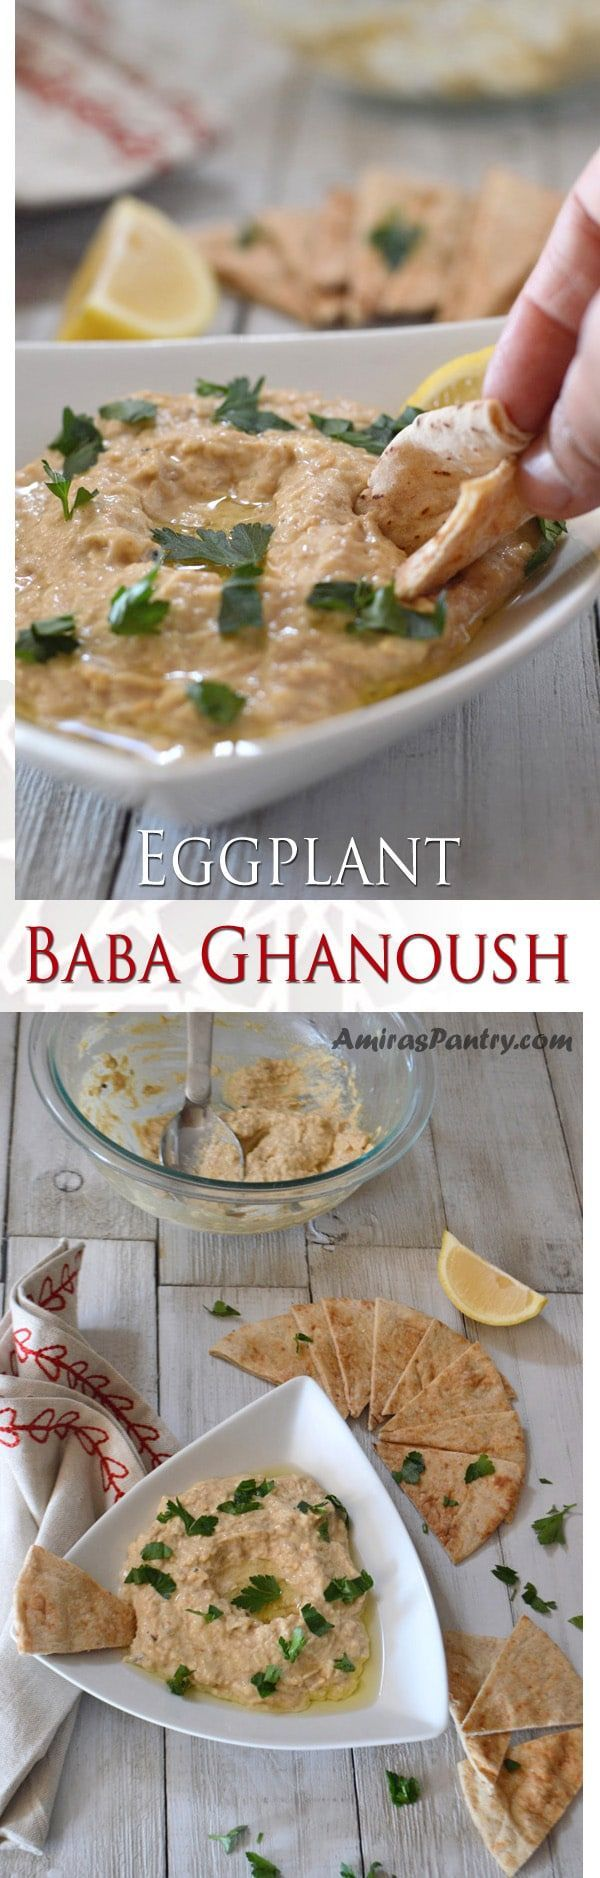 Baba ghanoush/ ghanouj or even papa ganoush is a smoked eggplant dip that is insanely delicious.Like the Tahini sauce, Baba ghanoush is an authentic Middle Eastern dip, that almost everyone has his favorite version of. Here is a basic recipe for this amazing roasted eggplant spread. So let me show you how to make baba ghanouj.